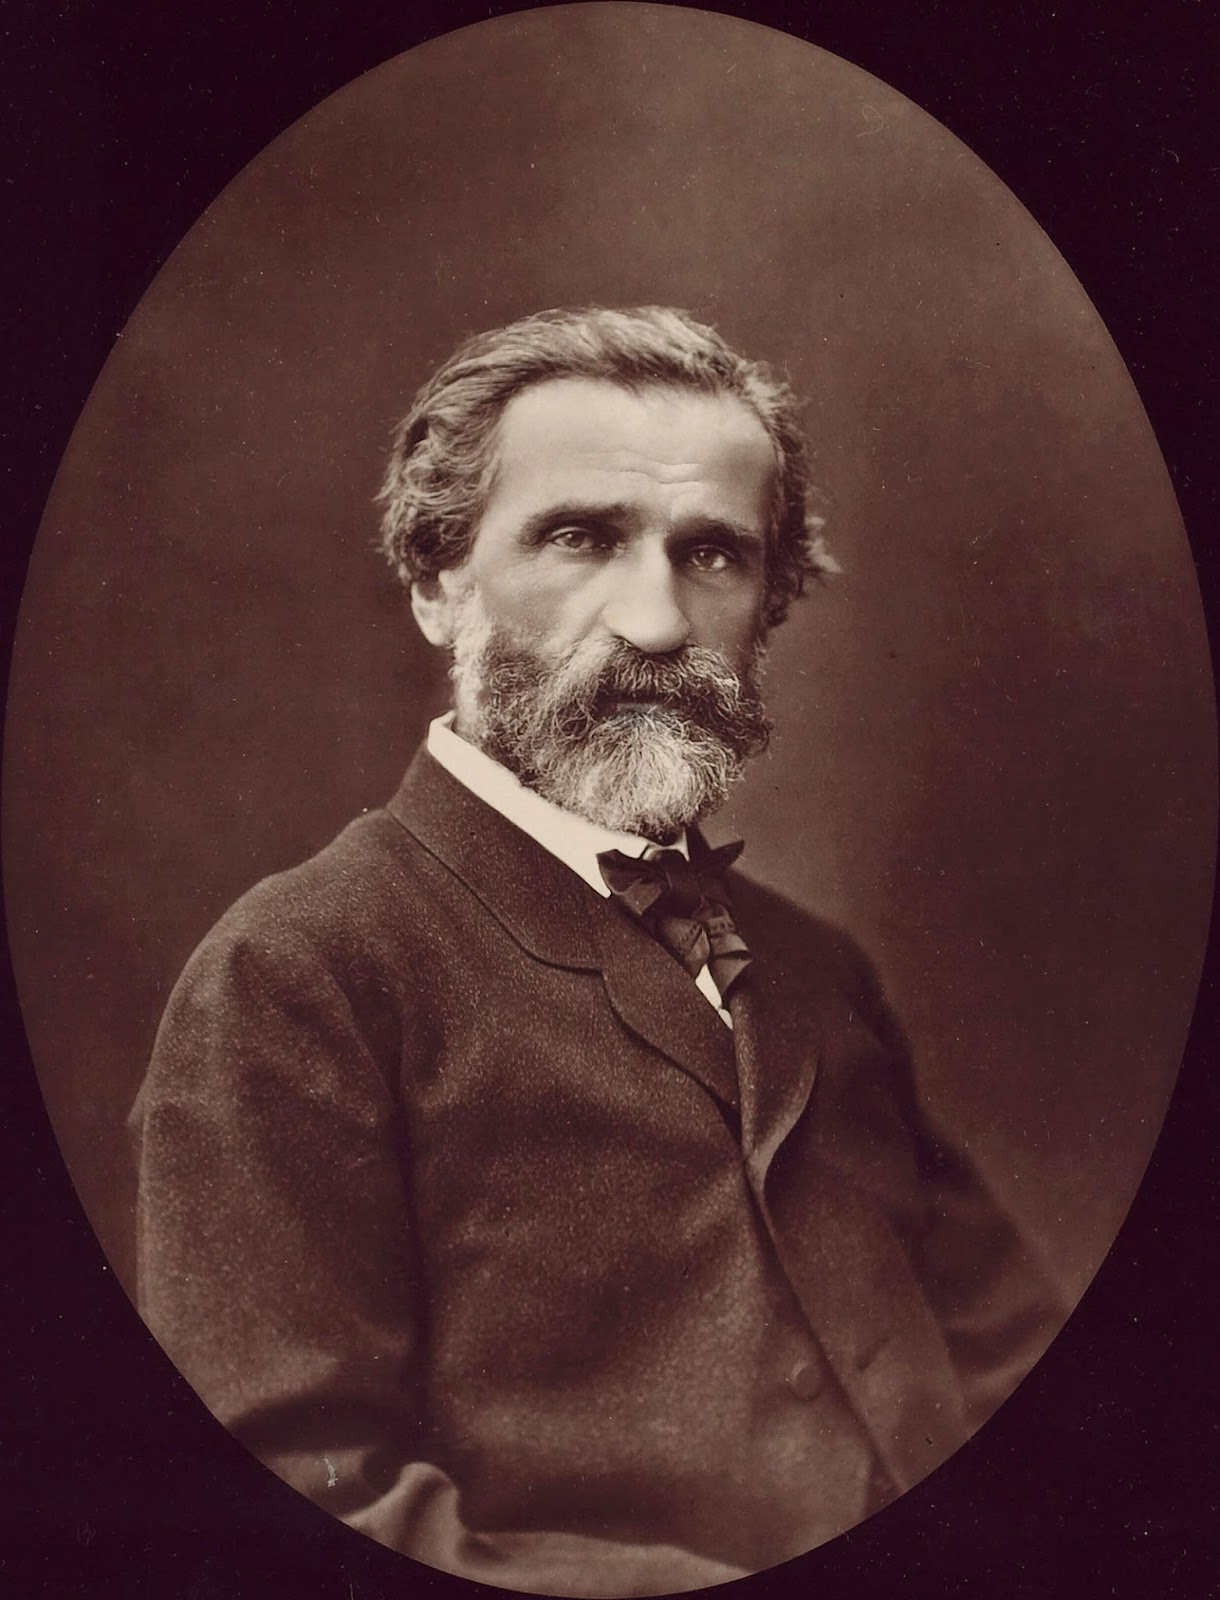 The 15 Greatest Classical Composers Of All Time - Giuseppe Verdi (1813-1901)